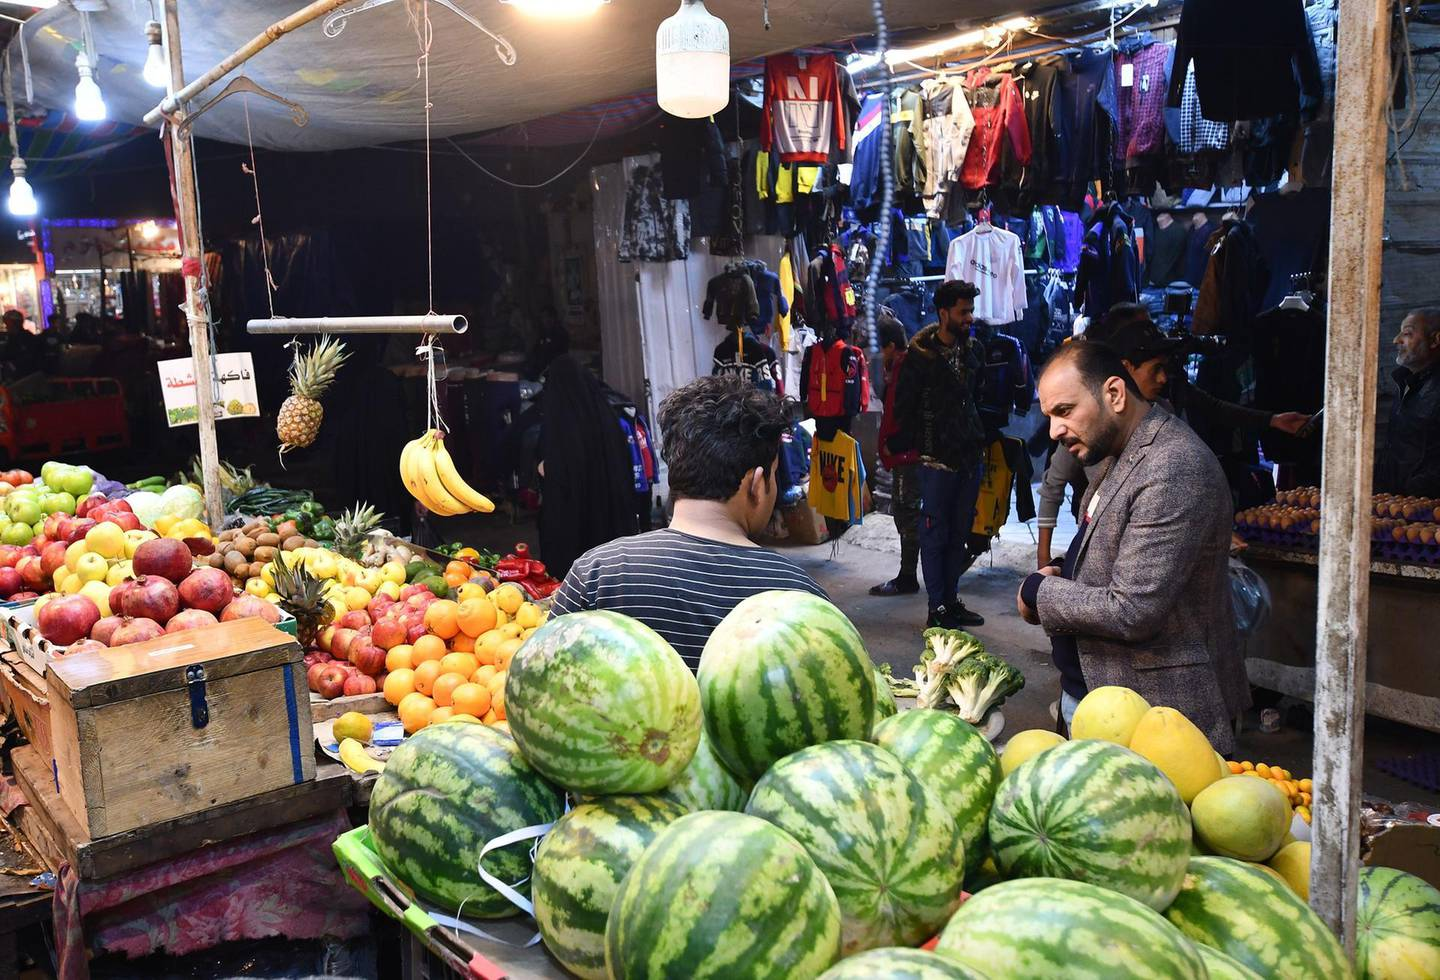 A man talks to a fruit vendor at a market in the southern Iraqi city of Nasiriyah in the Dhi Qar province, on December 20, 2020.  A year of economic agony for pandemic-hit and oil-reliant Iraq is drawing to a close, but a draft 2021 budget involving a hefty currency devaluation could bring more pain for citizens. Iraq, which relies on oil sales to finance 90 percent of its budget, projects that its economy has shrunk by 11 percent this year, while poverty doubles to 40 percent of the country's 40 million residents. / AFP / Asaad NIAZI